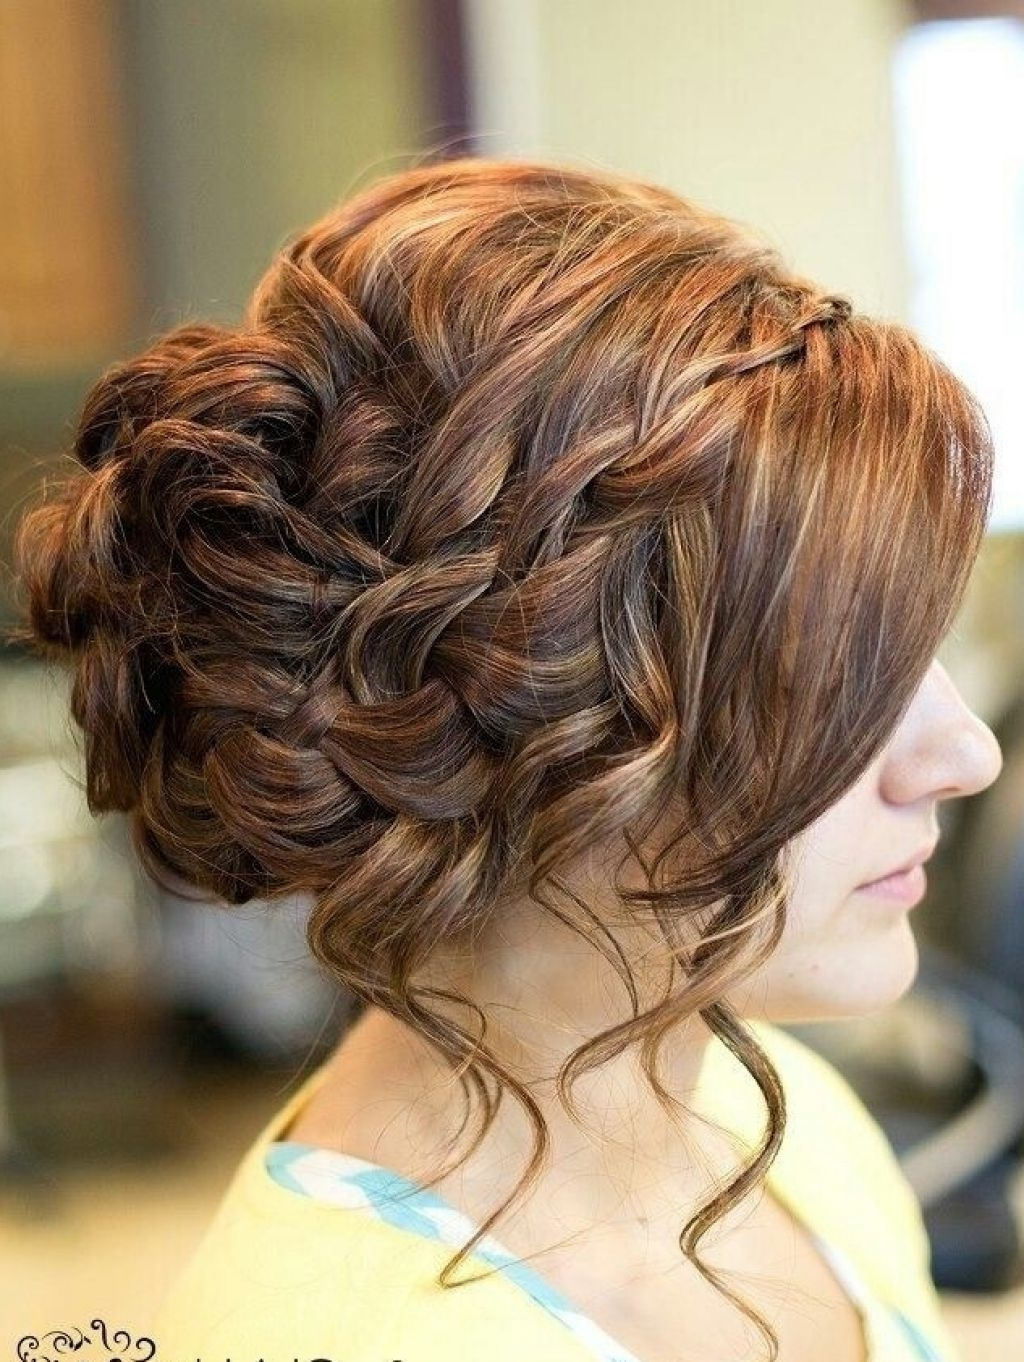 Prom Hairstyles For Long Hair That Are Simply Adorable With Regard To Bun Updo Hairstyles (View 12 of 15)